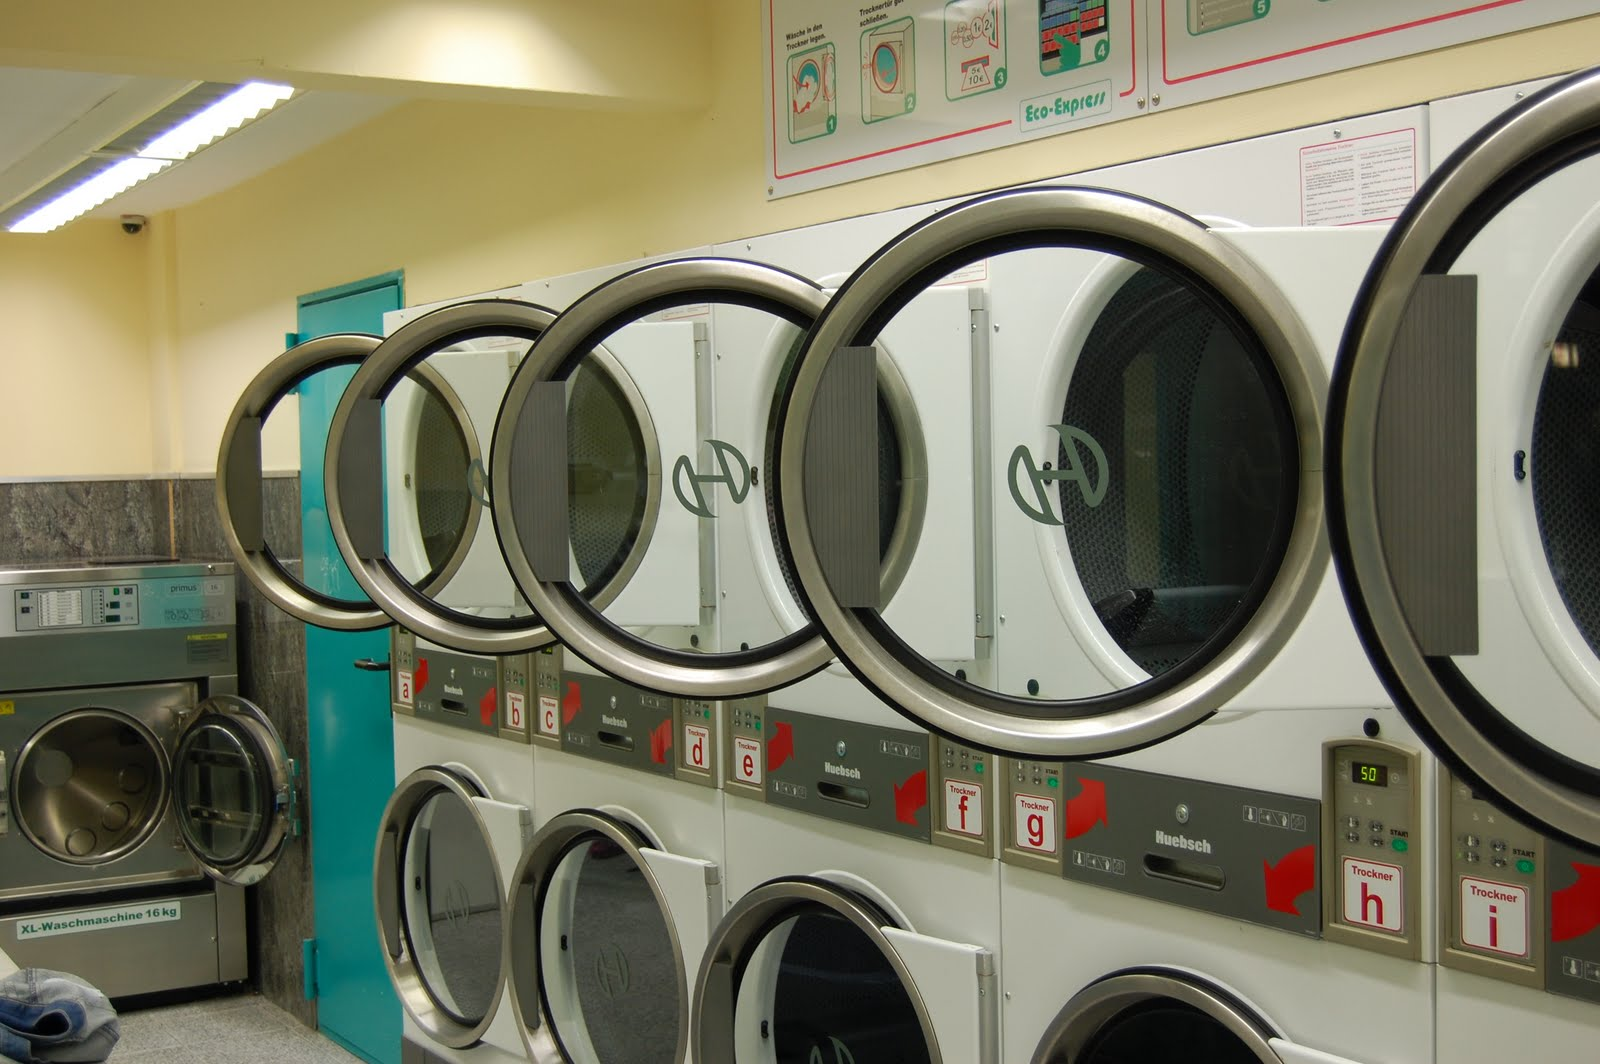 Laundromats and a Letter of No Objection